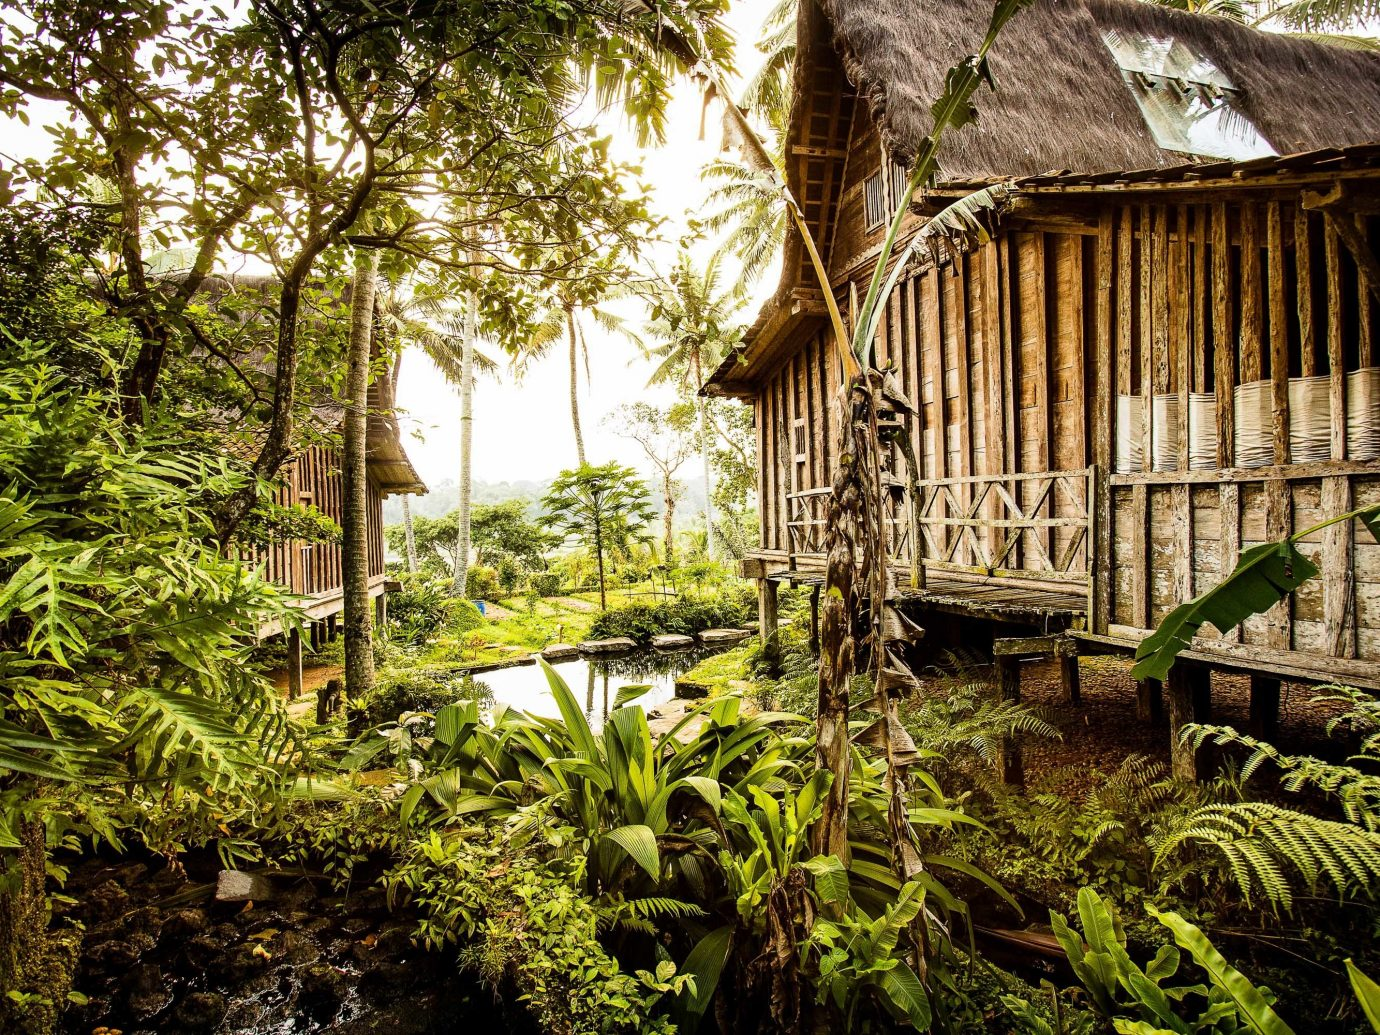 Boutique Hotels Hotels Nature vegetation plant tree Jungle leaf house rainforest Forest old growth forest arecales grass water landscape cottage outdoor structure woodland plantation